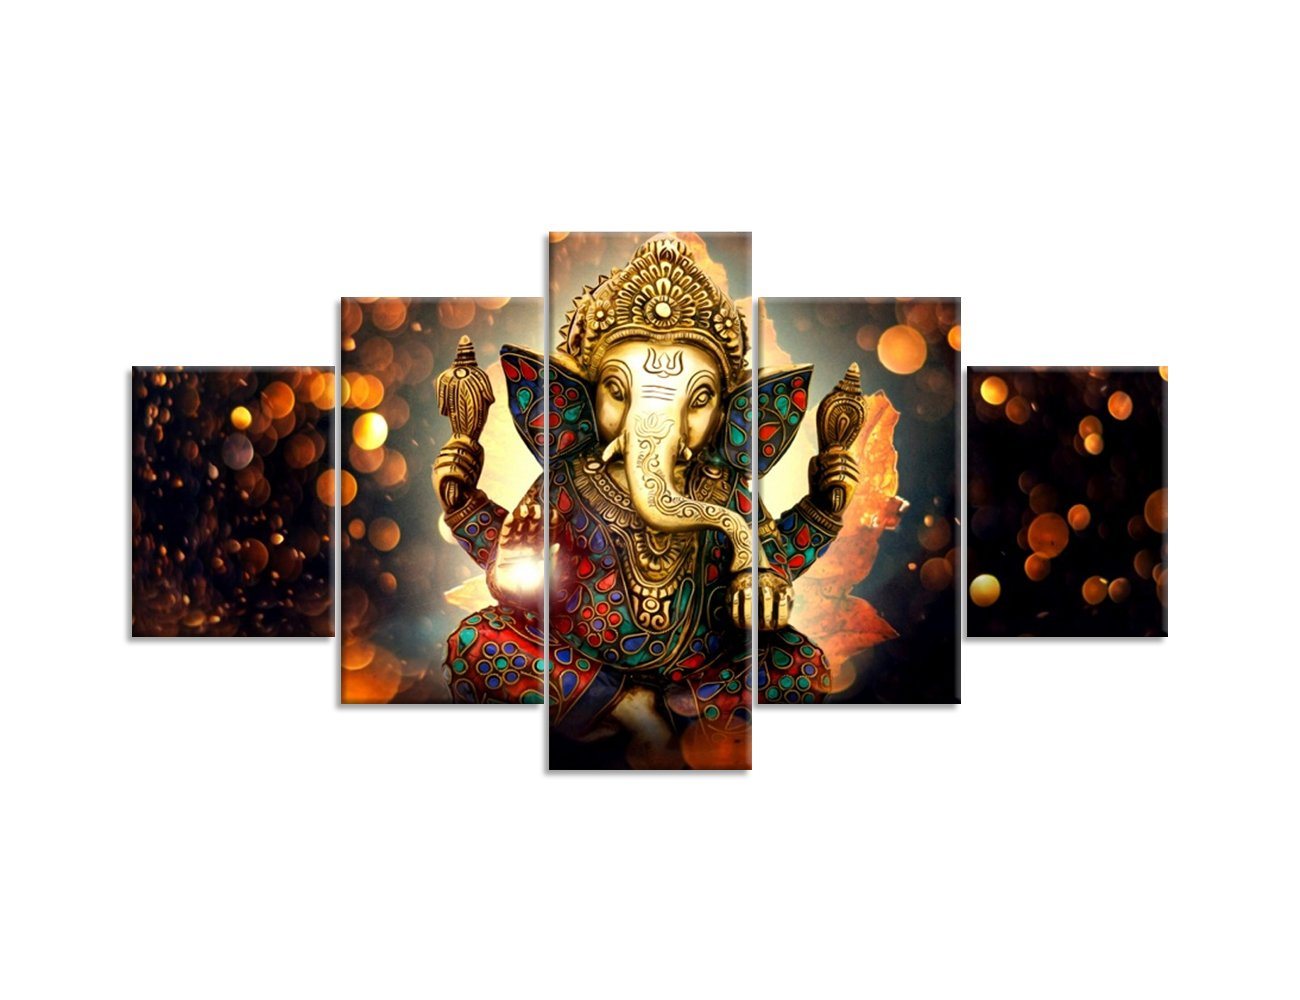 Hindu ganesha canvas painting wall art for living room decorative painting modern home decor 5pcs wall art hd print hindu god ganesha elephant picture